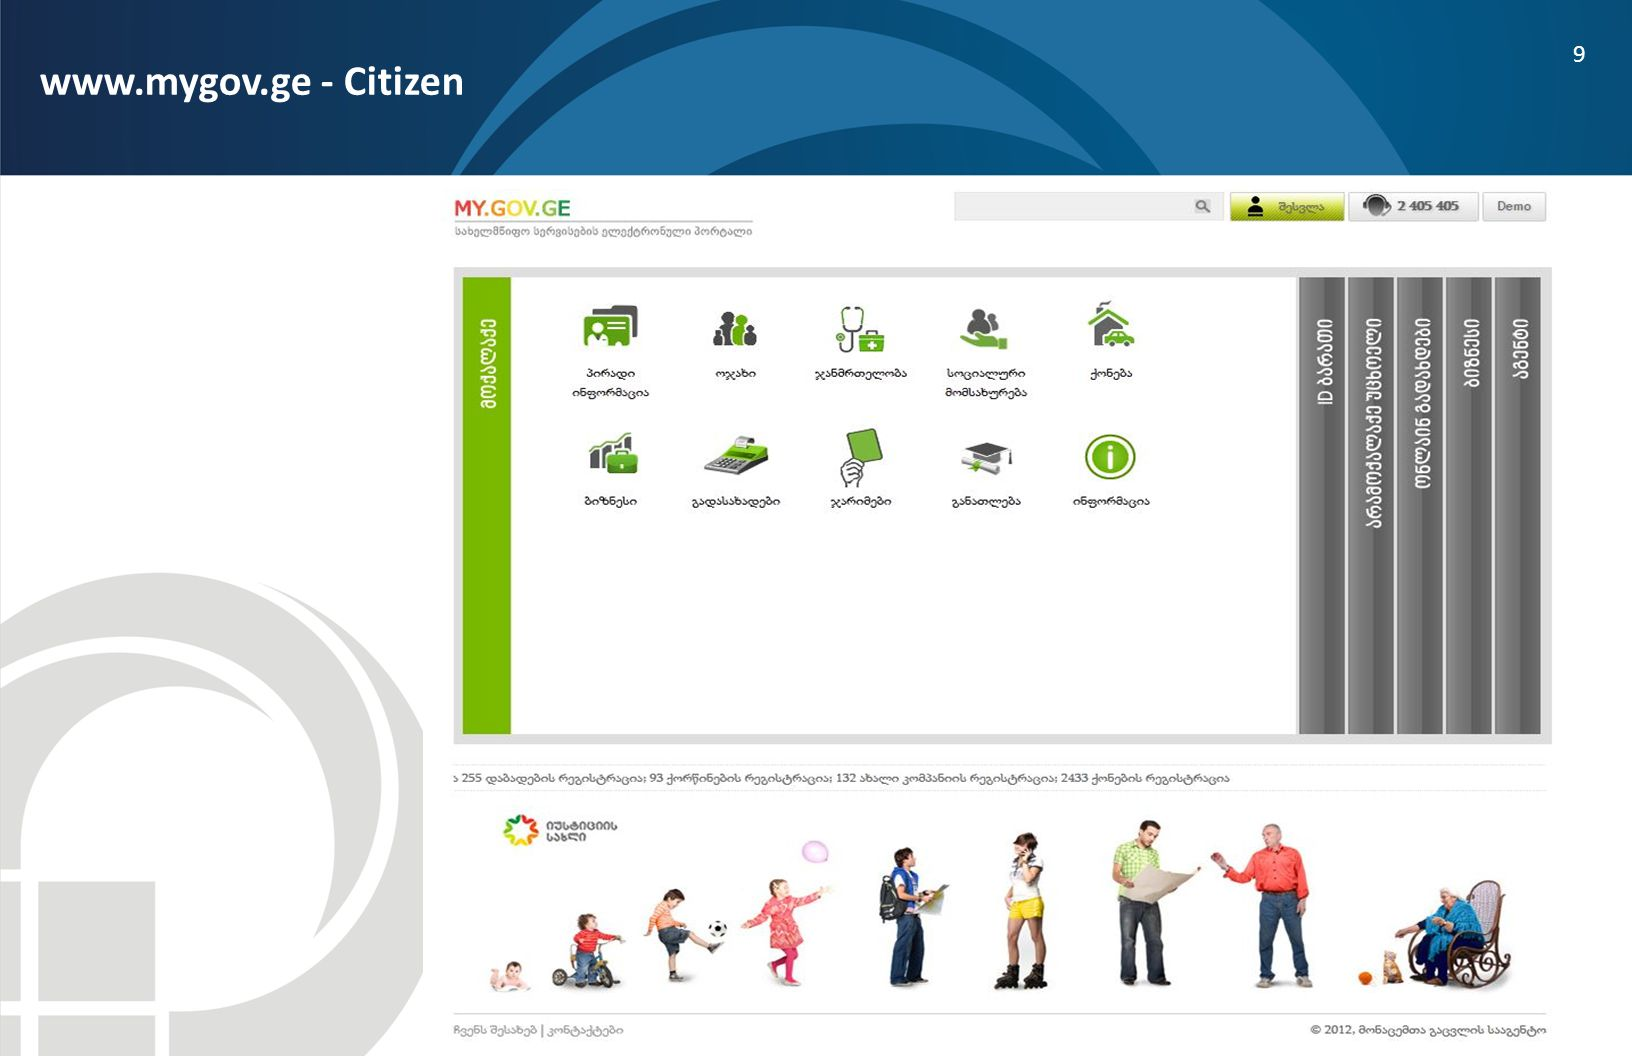 www.mygov.ge - Citizen